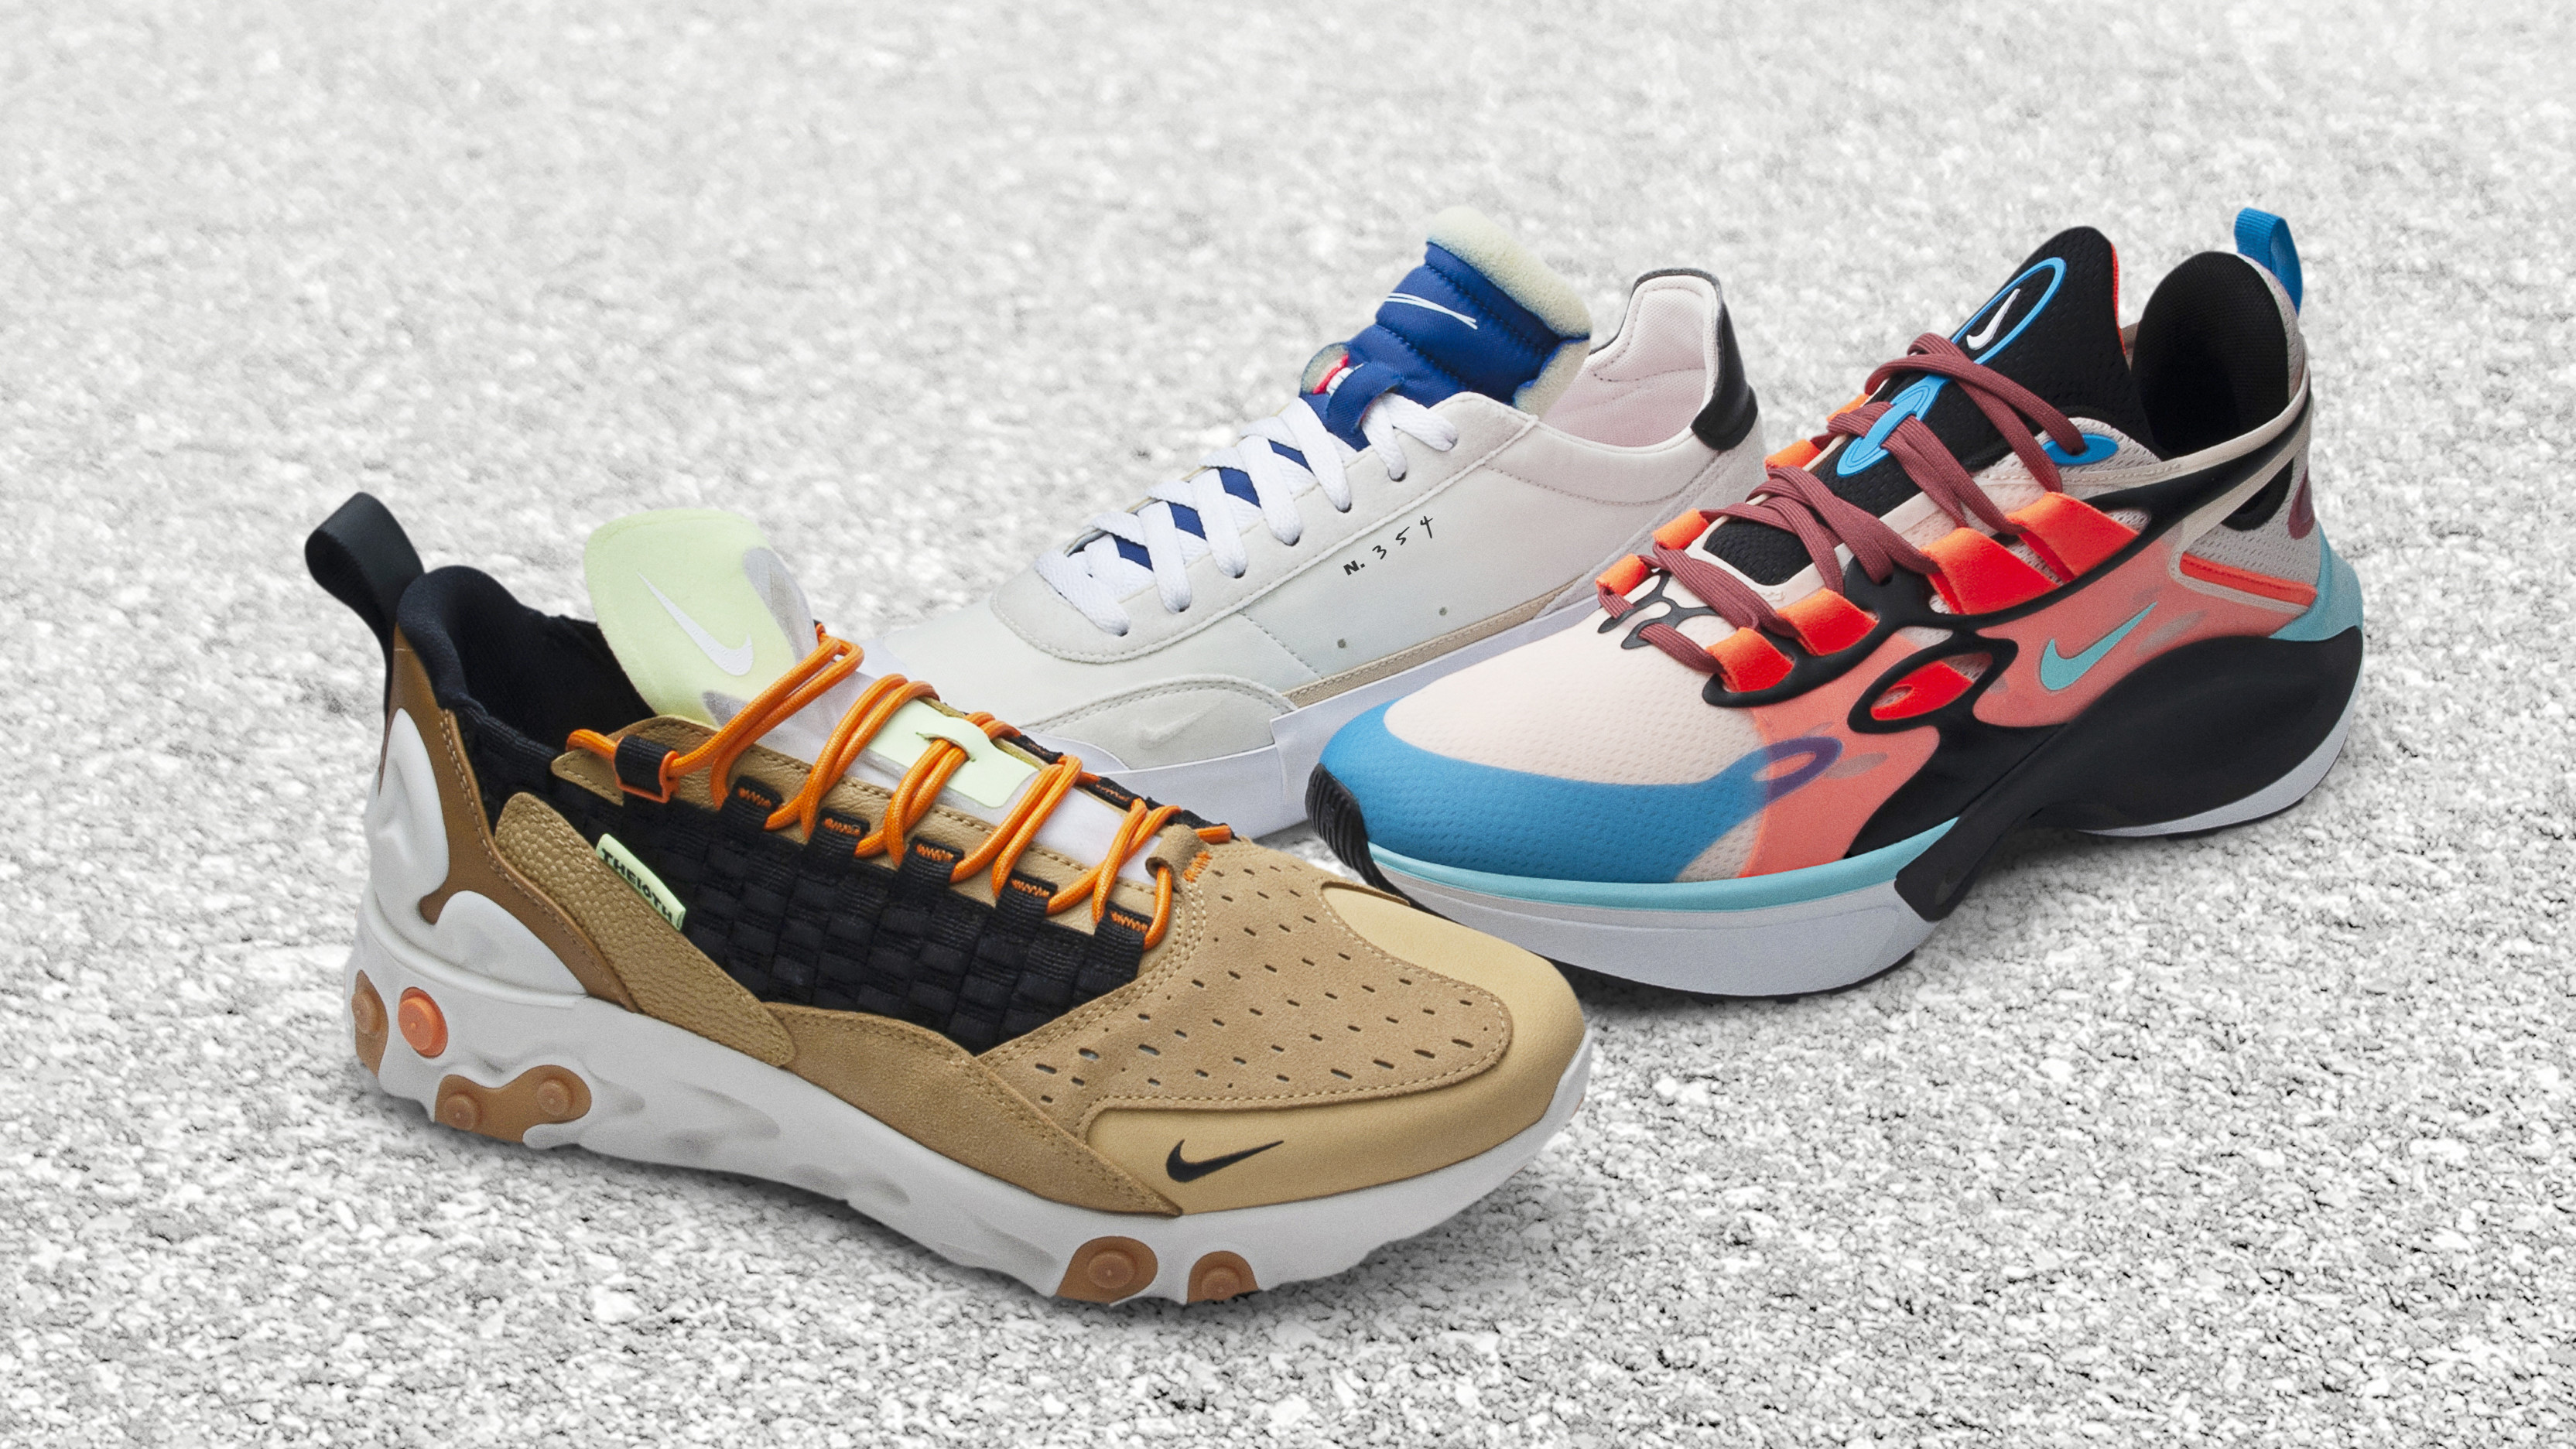 Rayo cola Celo  Nike Sportswear N.354 The10th Dimsix Release Date | Sole Collector